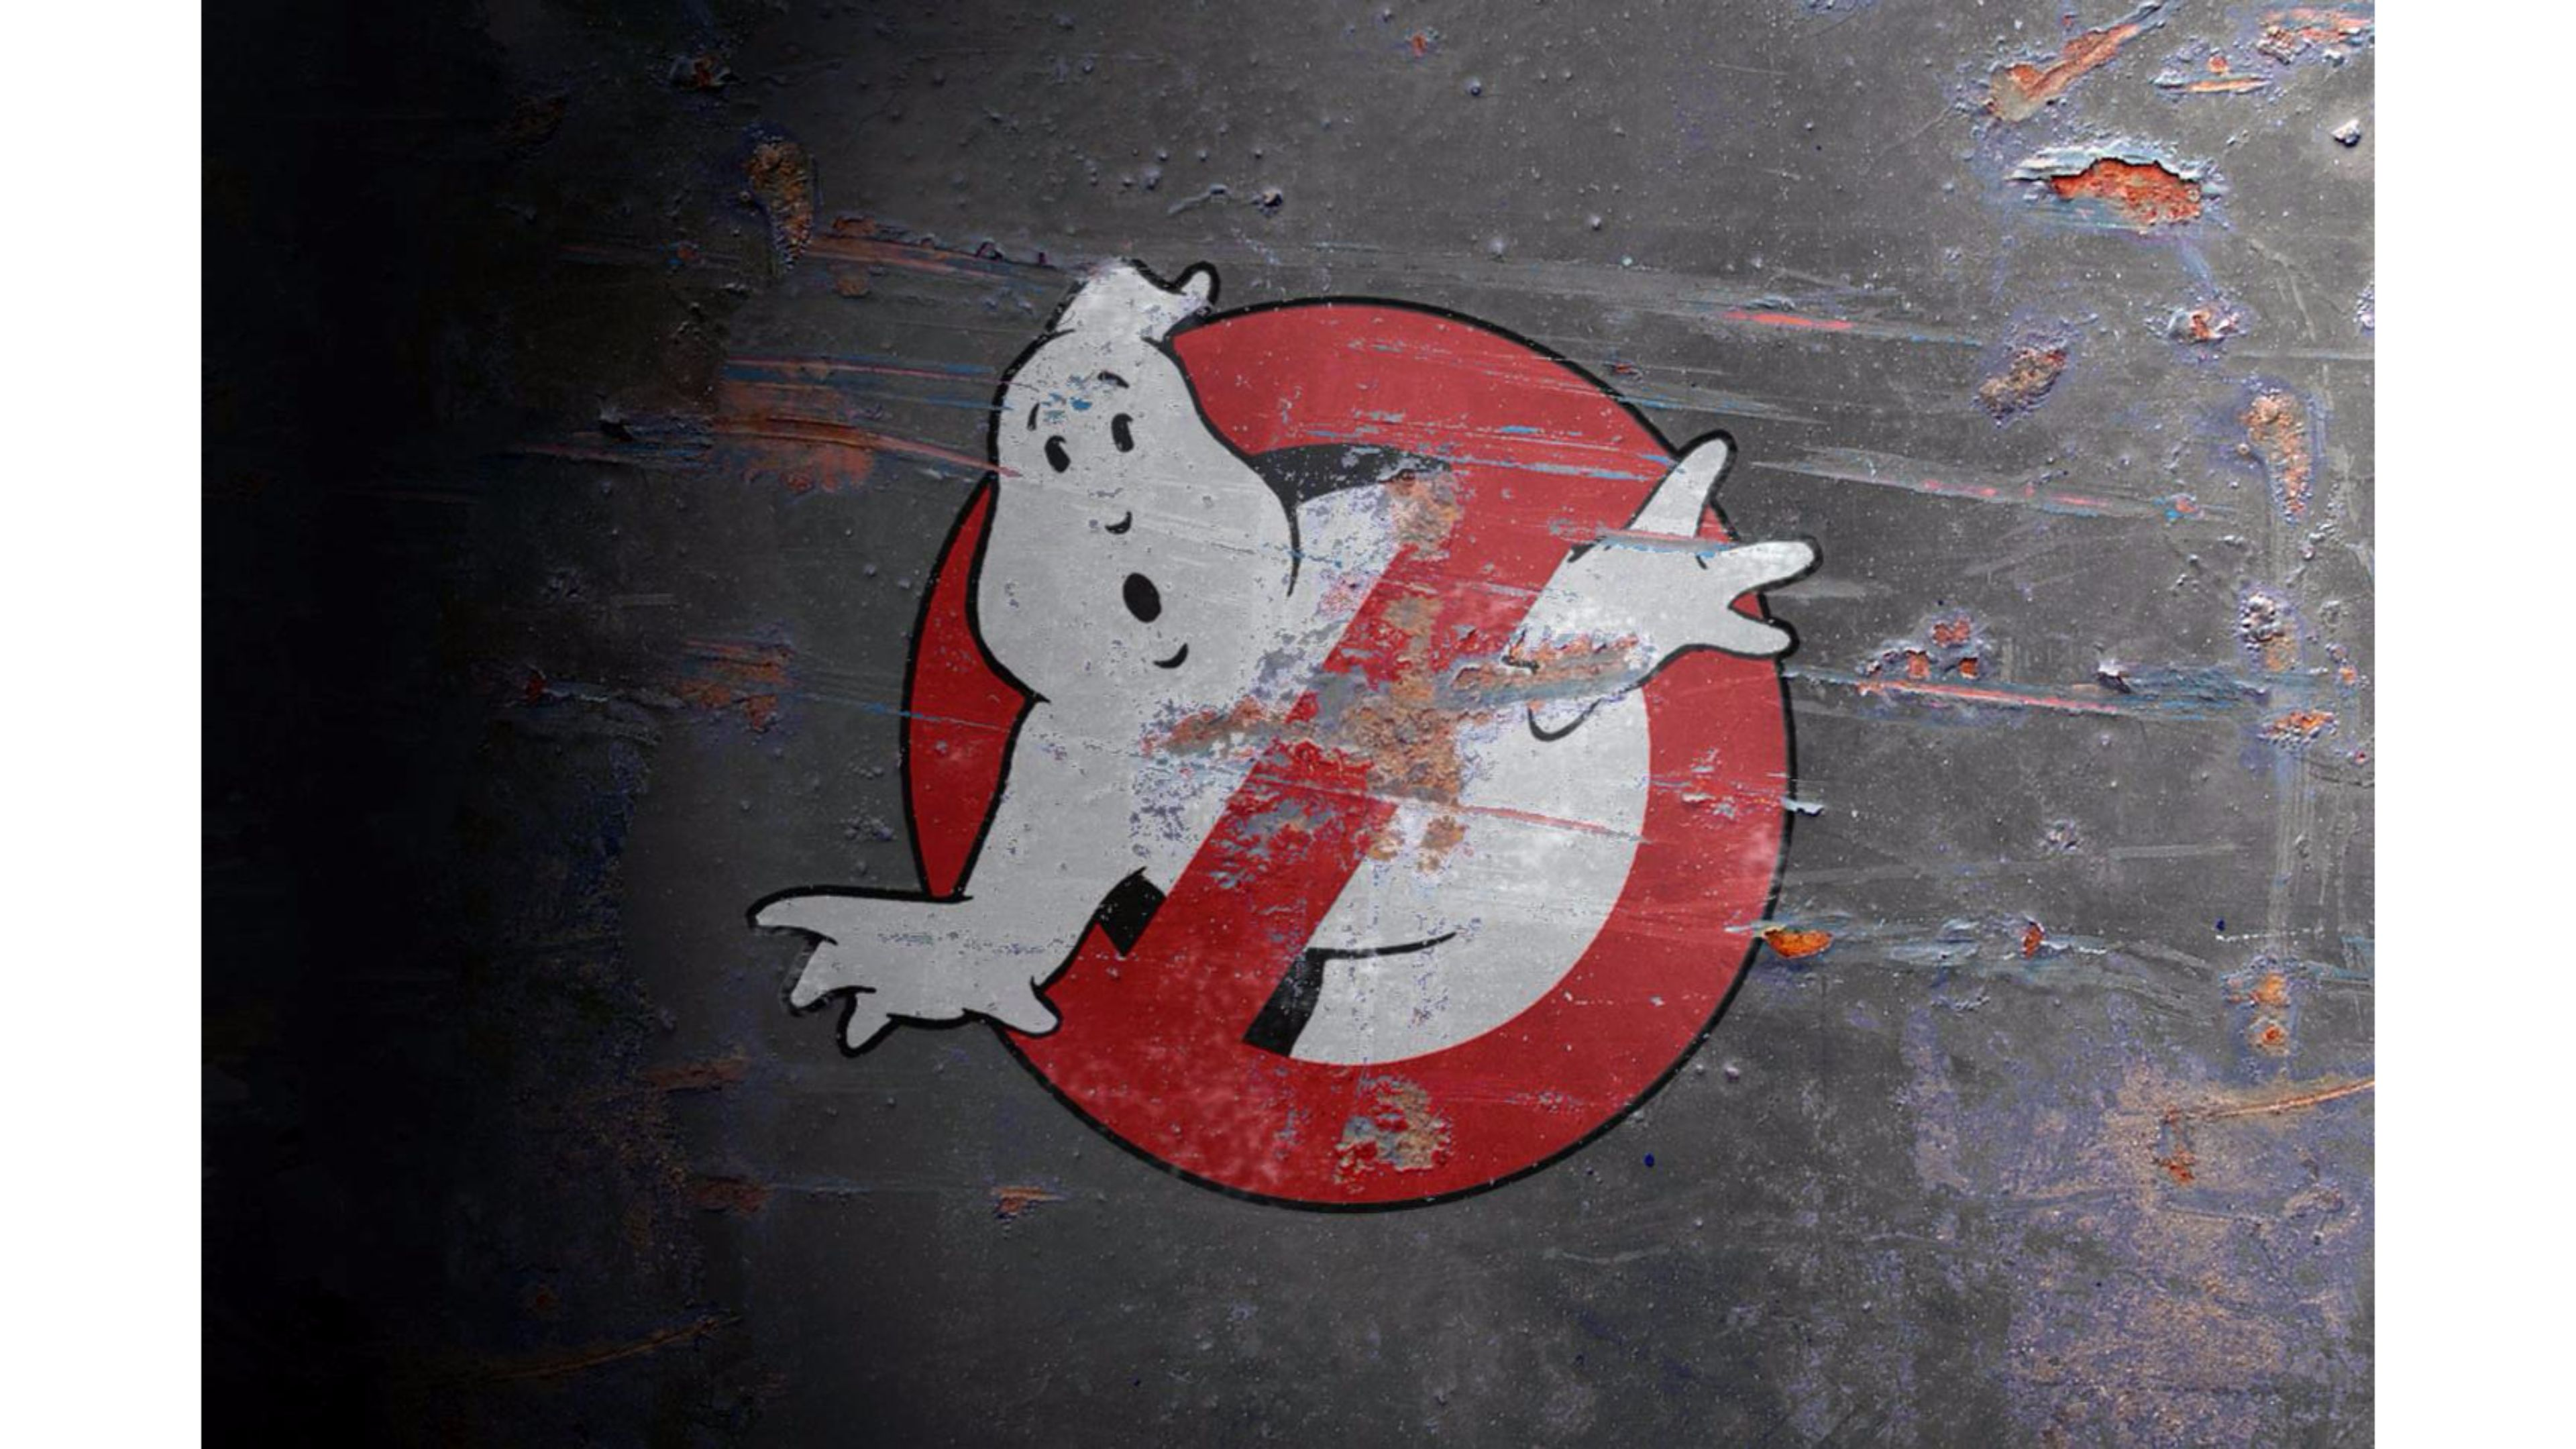 ghostbusters wallpapers  photos and desktop backgrounds up